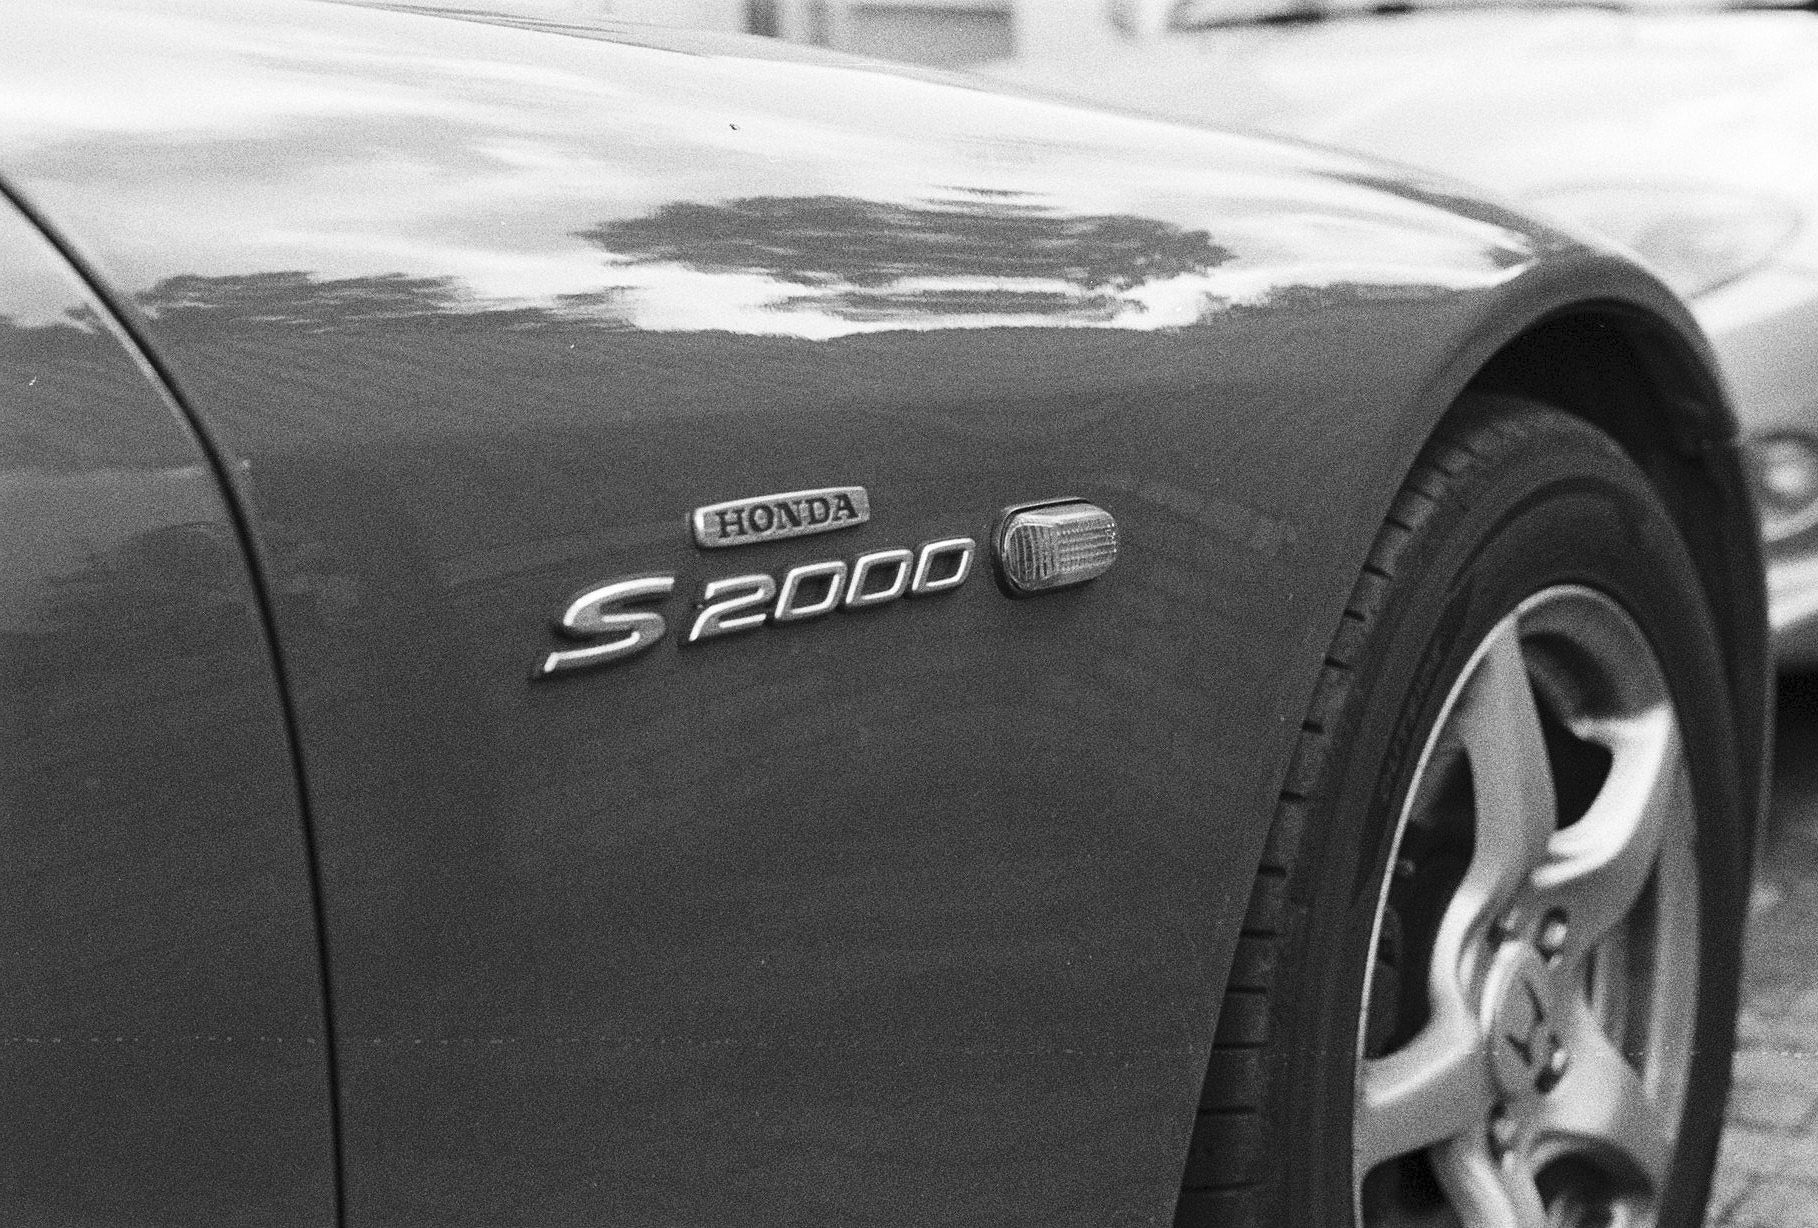 My good friends Honda S2000, a somewhat less rusty car compared to mine – Taken on their drive on HP5+